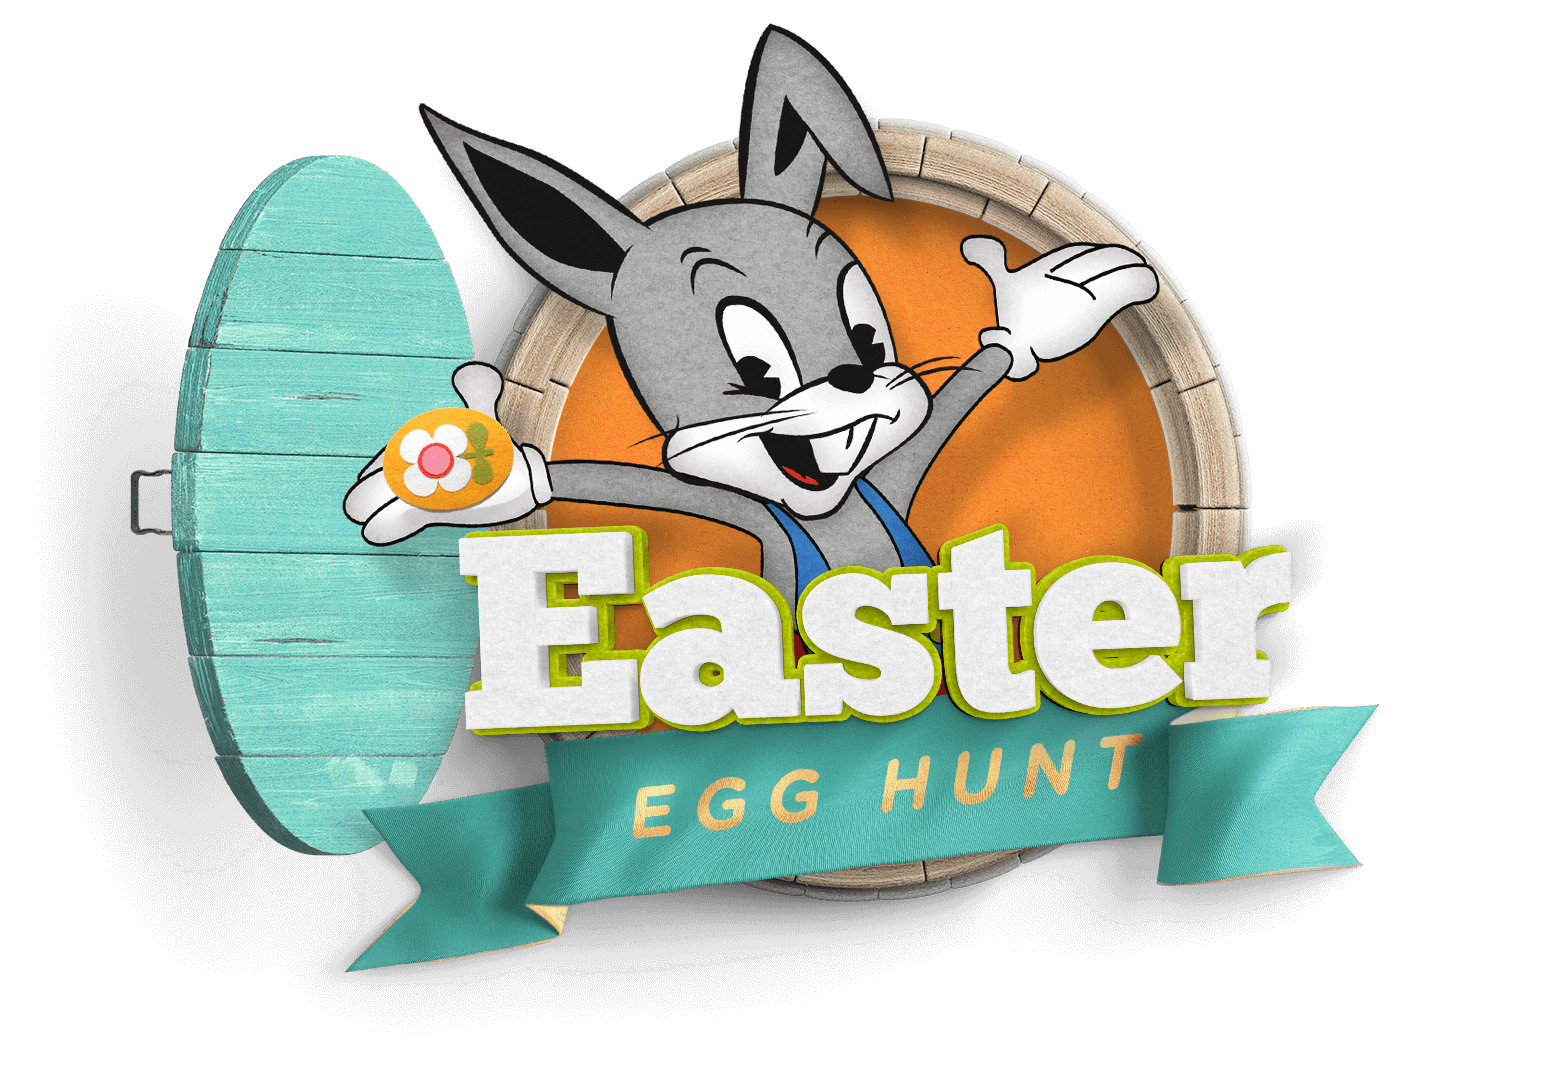 Volunteering clipart easter. Egg hunt event at